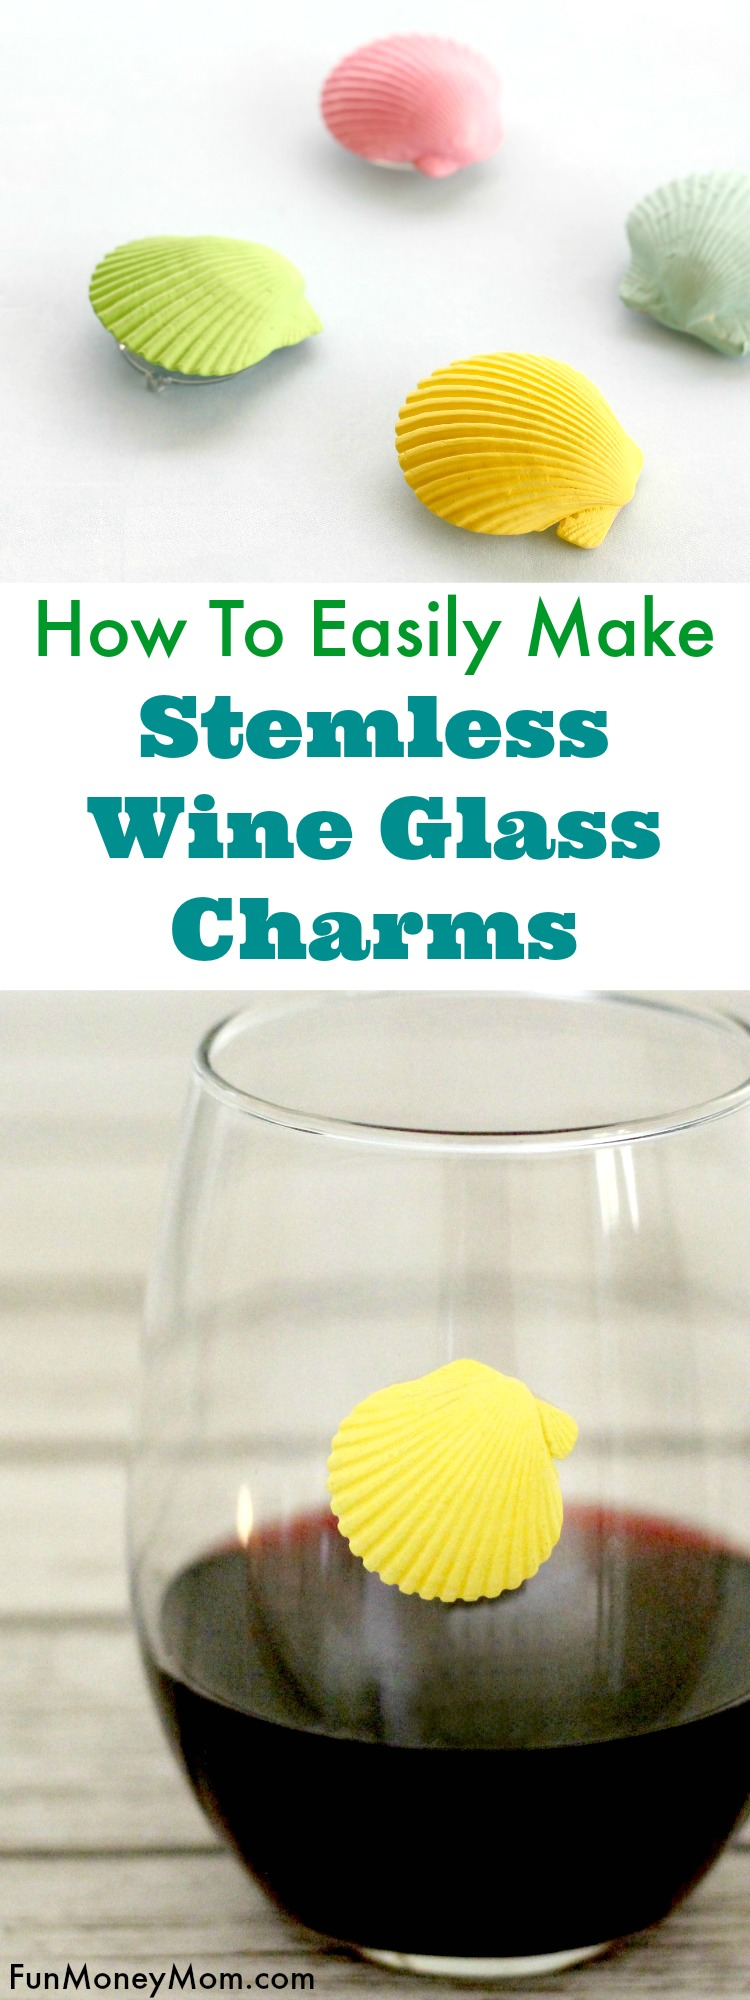 Want an easy craft that'll also help you figure out which wine glass is yours? These cute stemless wine glass charms are both fun and easy to make.